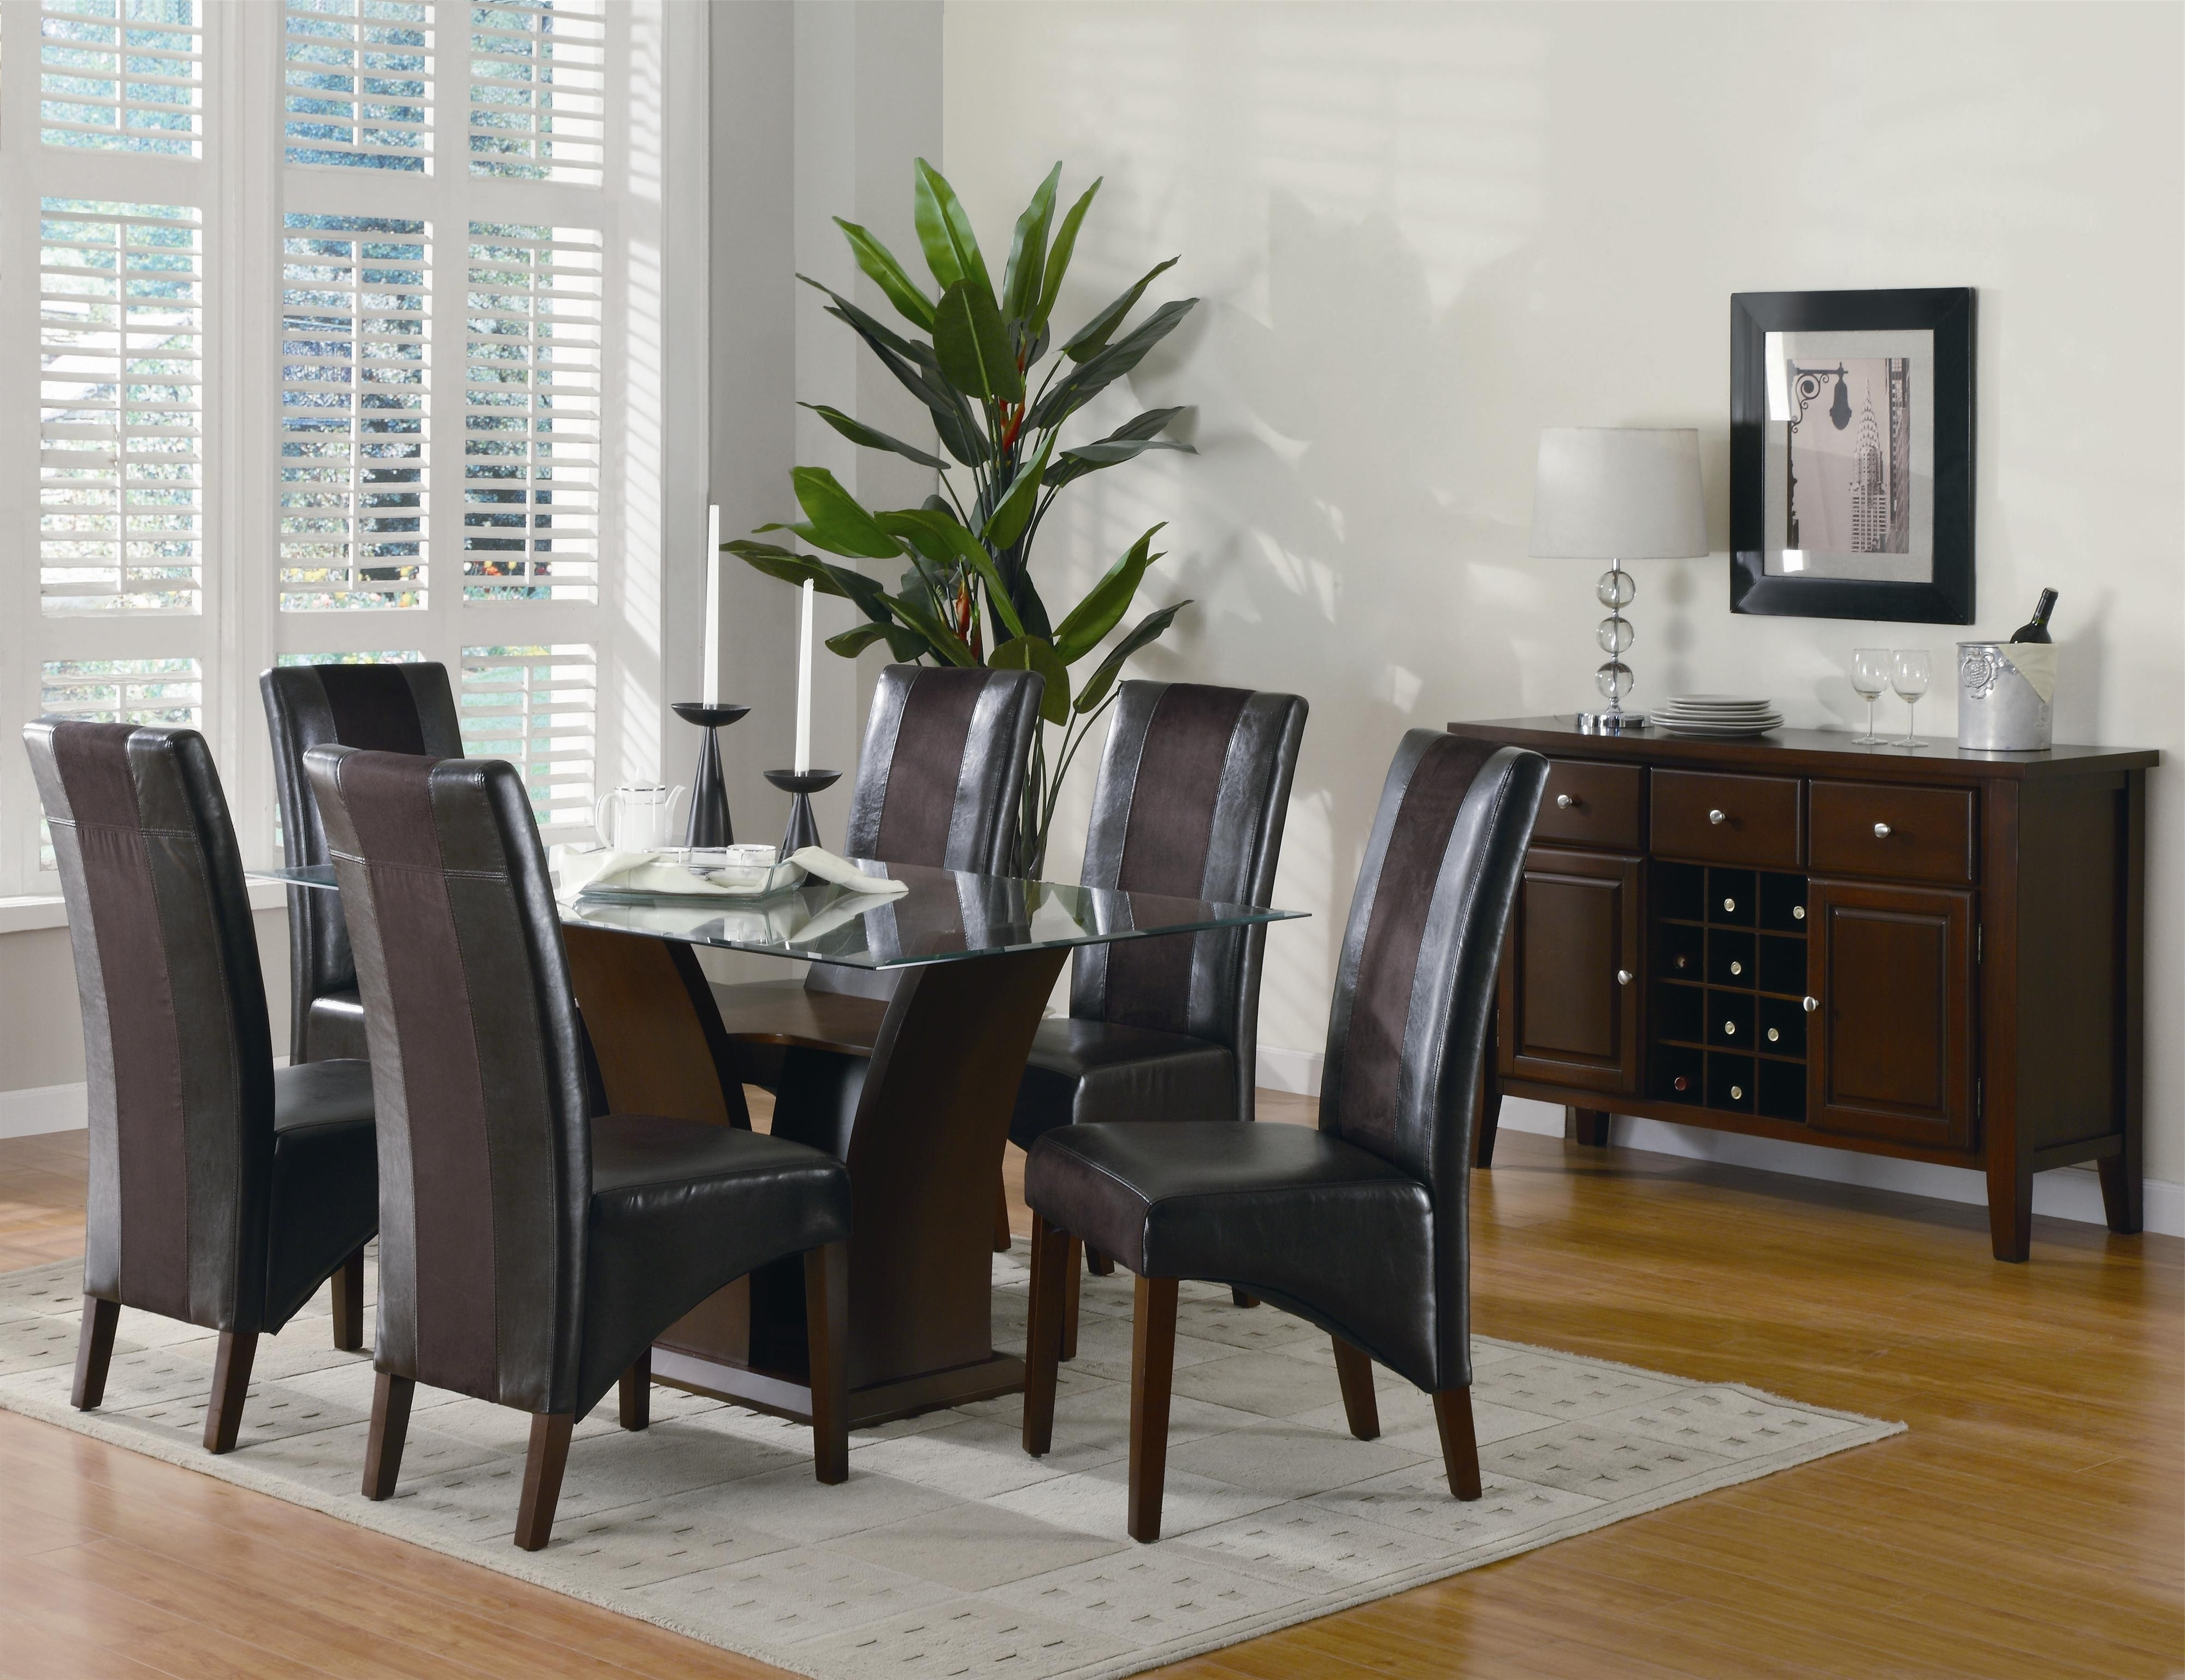 Most Recently Released Black Glass Dining Tables Inside Dining Room: Best Glass Dining Room Sets Dining Room Sets On Sale (View 20 of 25)